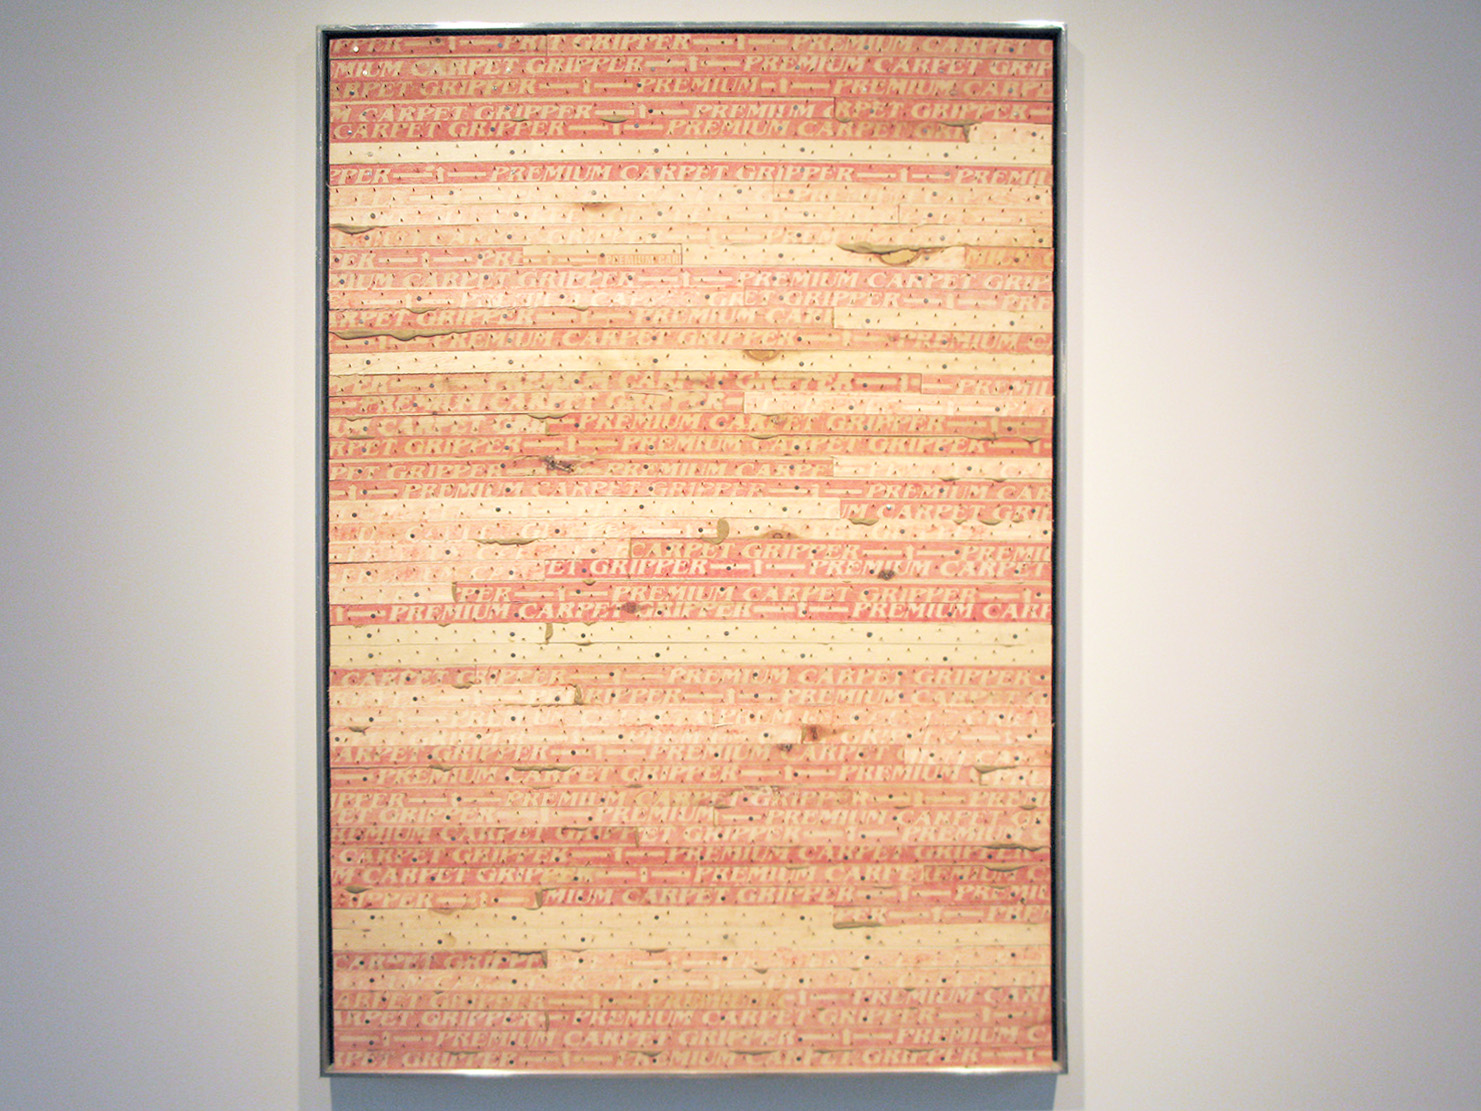 Untitled (Study in Red), 2006, carpet strip, salvaged museum frame, 42 x 29.5 inches